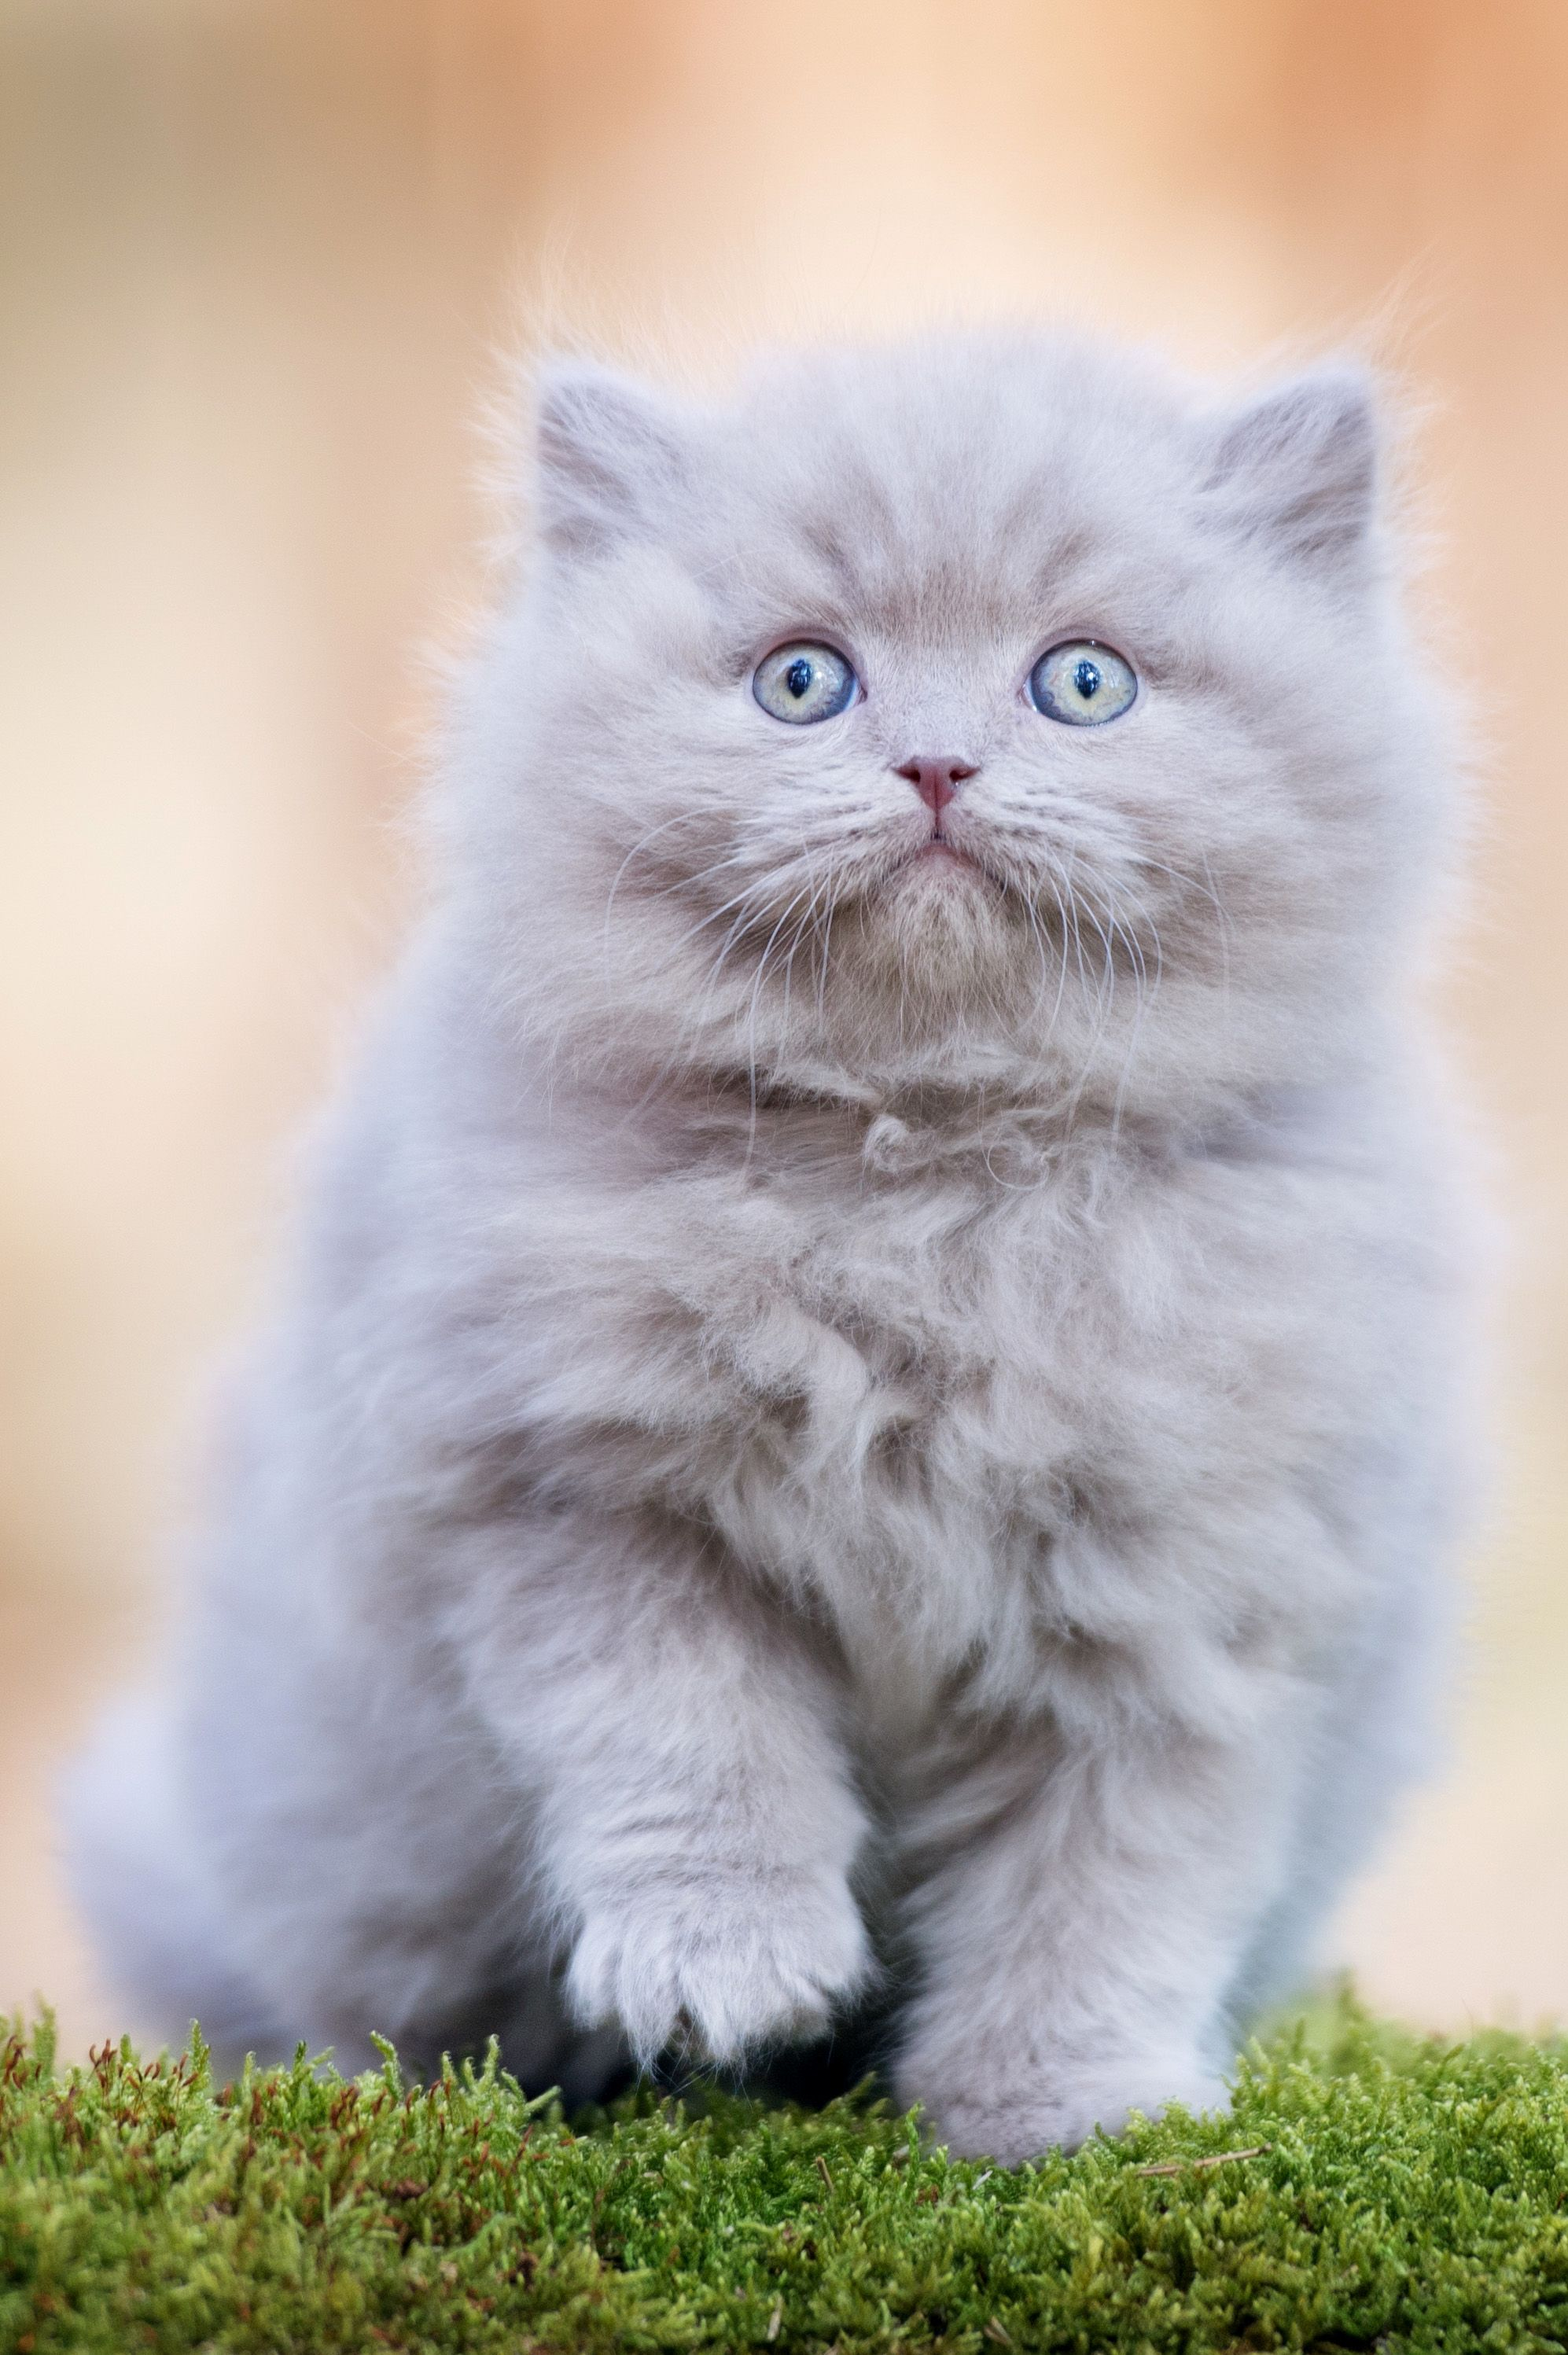 How To Take Care Of Your British Longhair Cat Mystart Cute Cats Photos Pets Cats Images Of Cute Cats